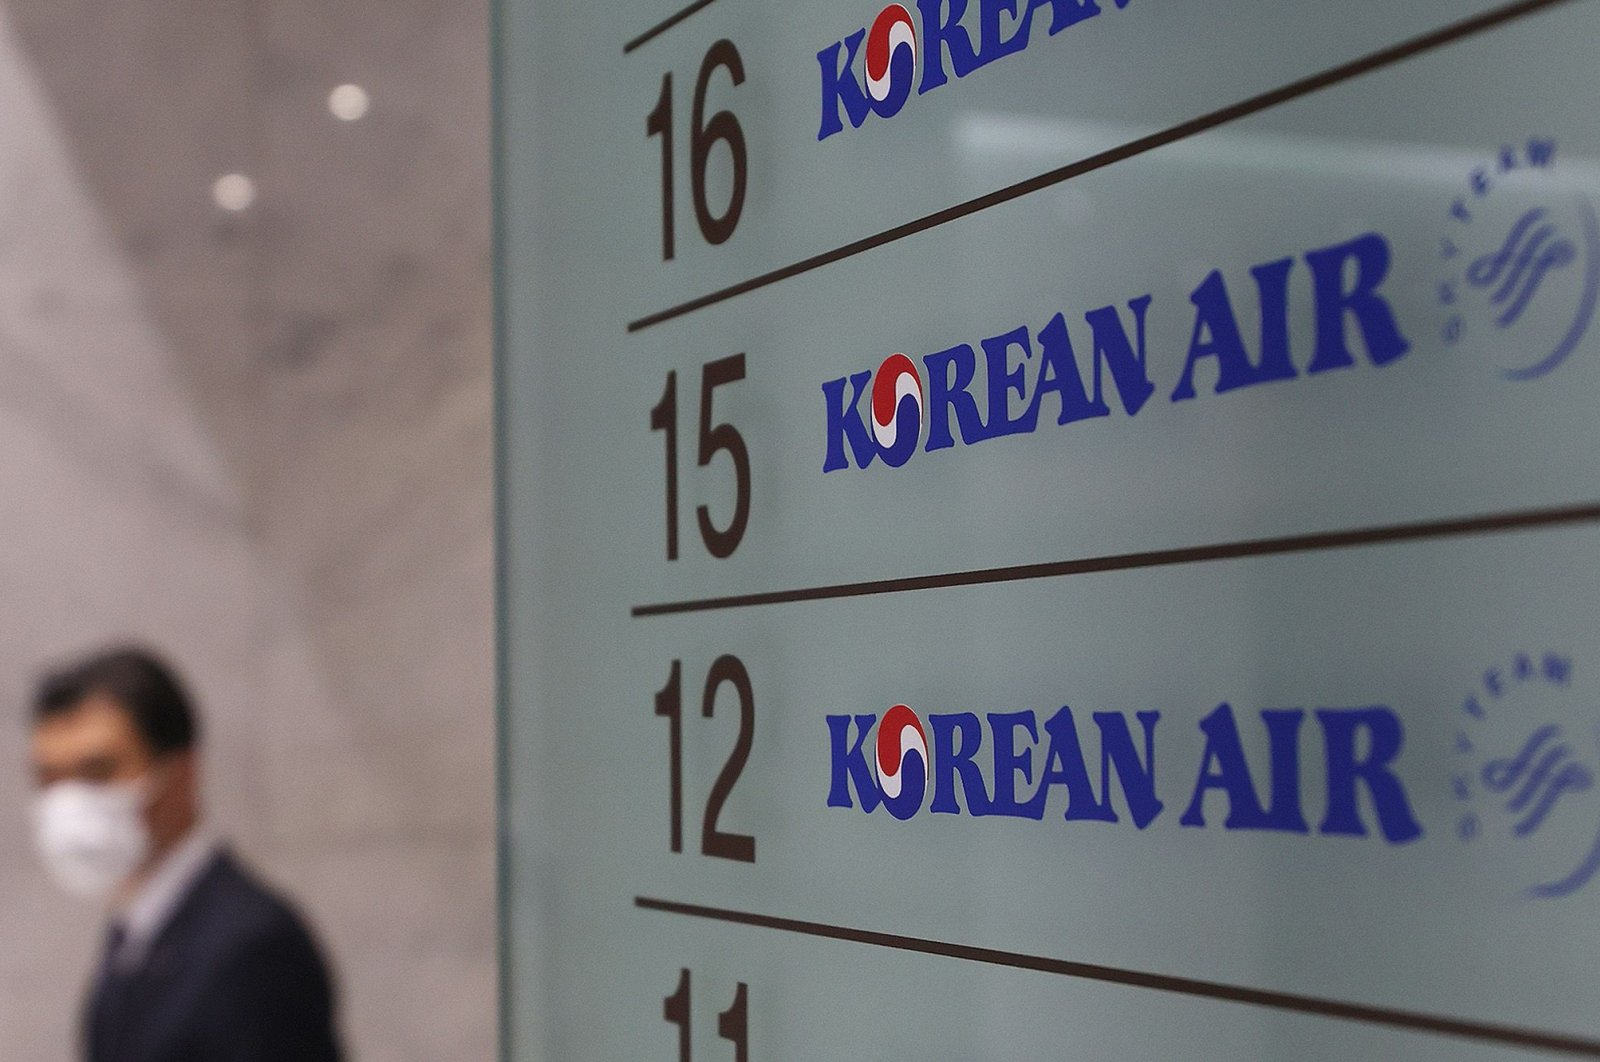 Korean Air logos are displayed at the company's offices in Seoul, South Korea on Nov. 16, 2020. (AFP Photo)